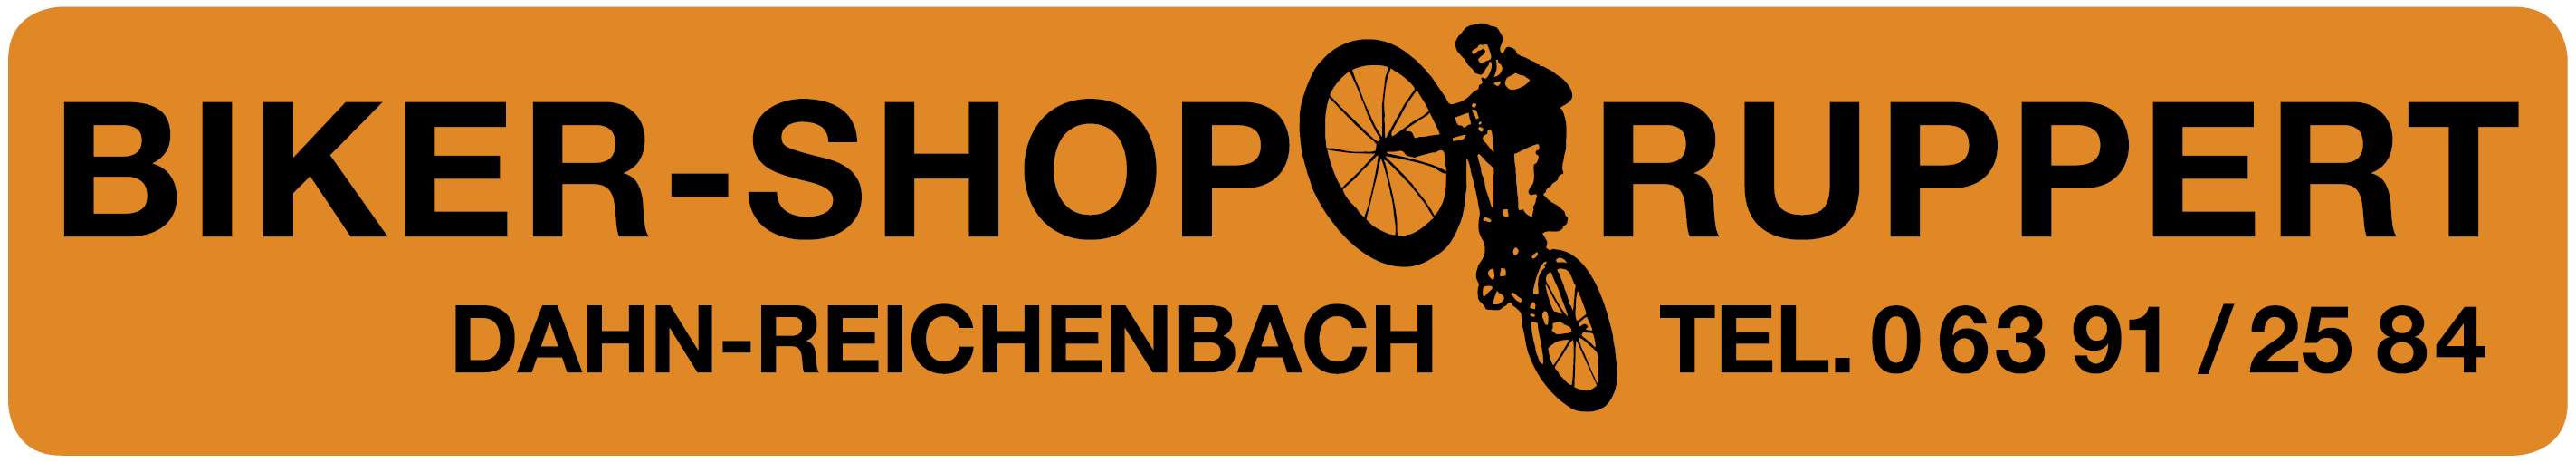 Biker-Shop Ruppert